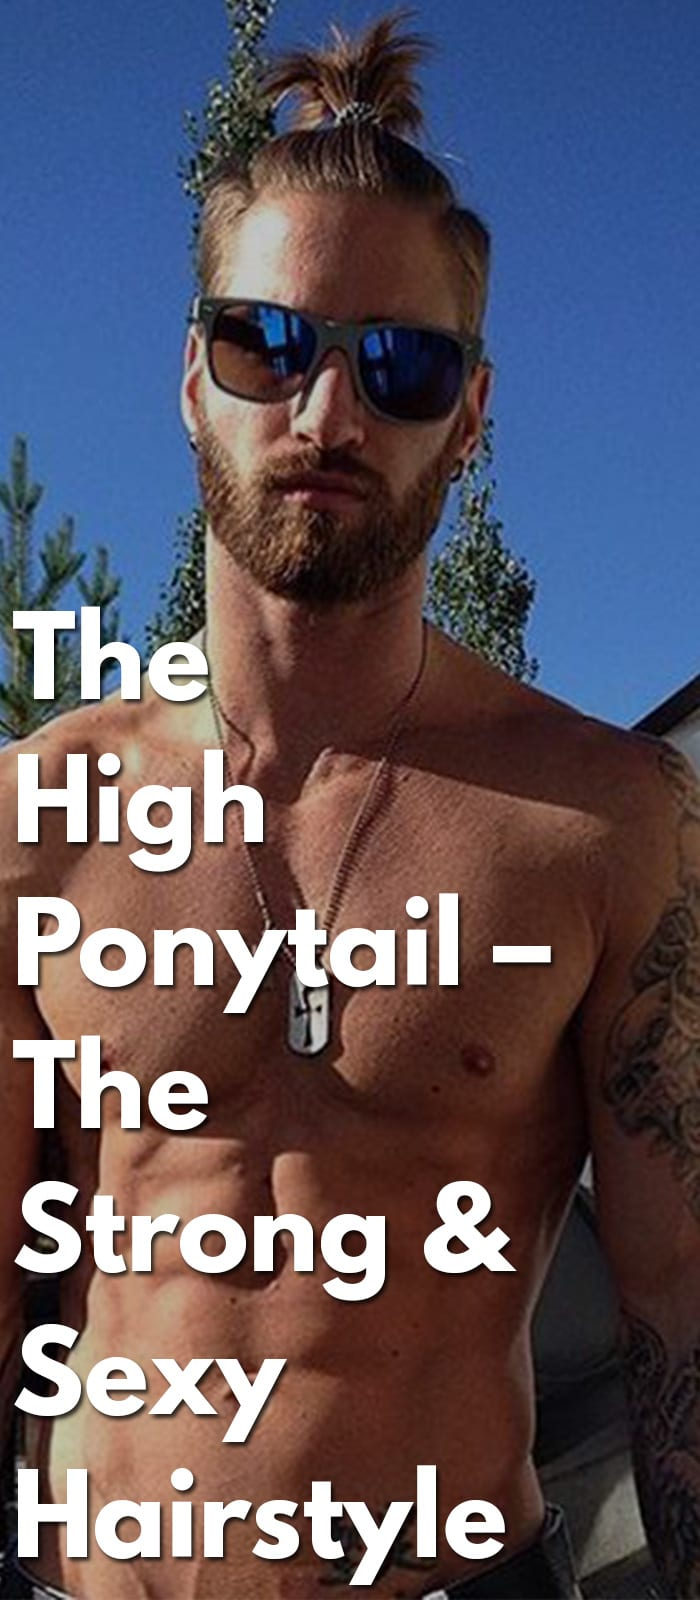 The-High-Ponytail-–-The-Strong-&-Sexy-Hairstyle...